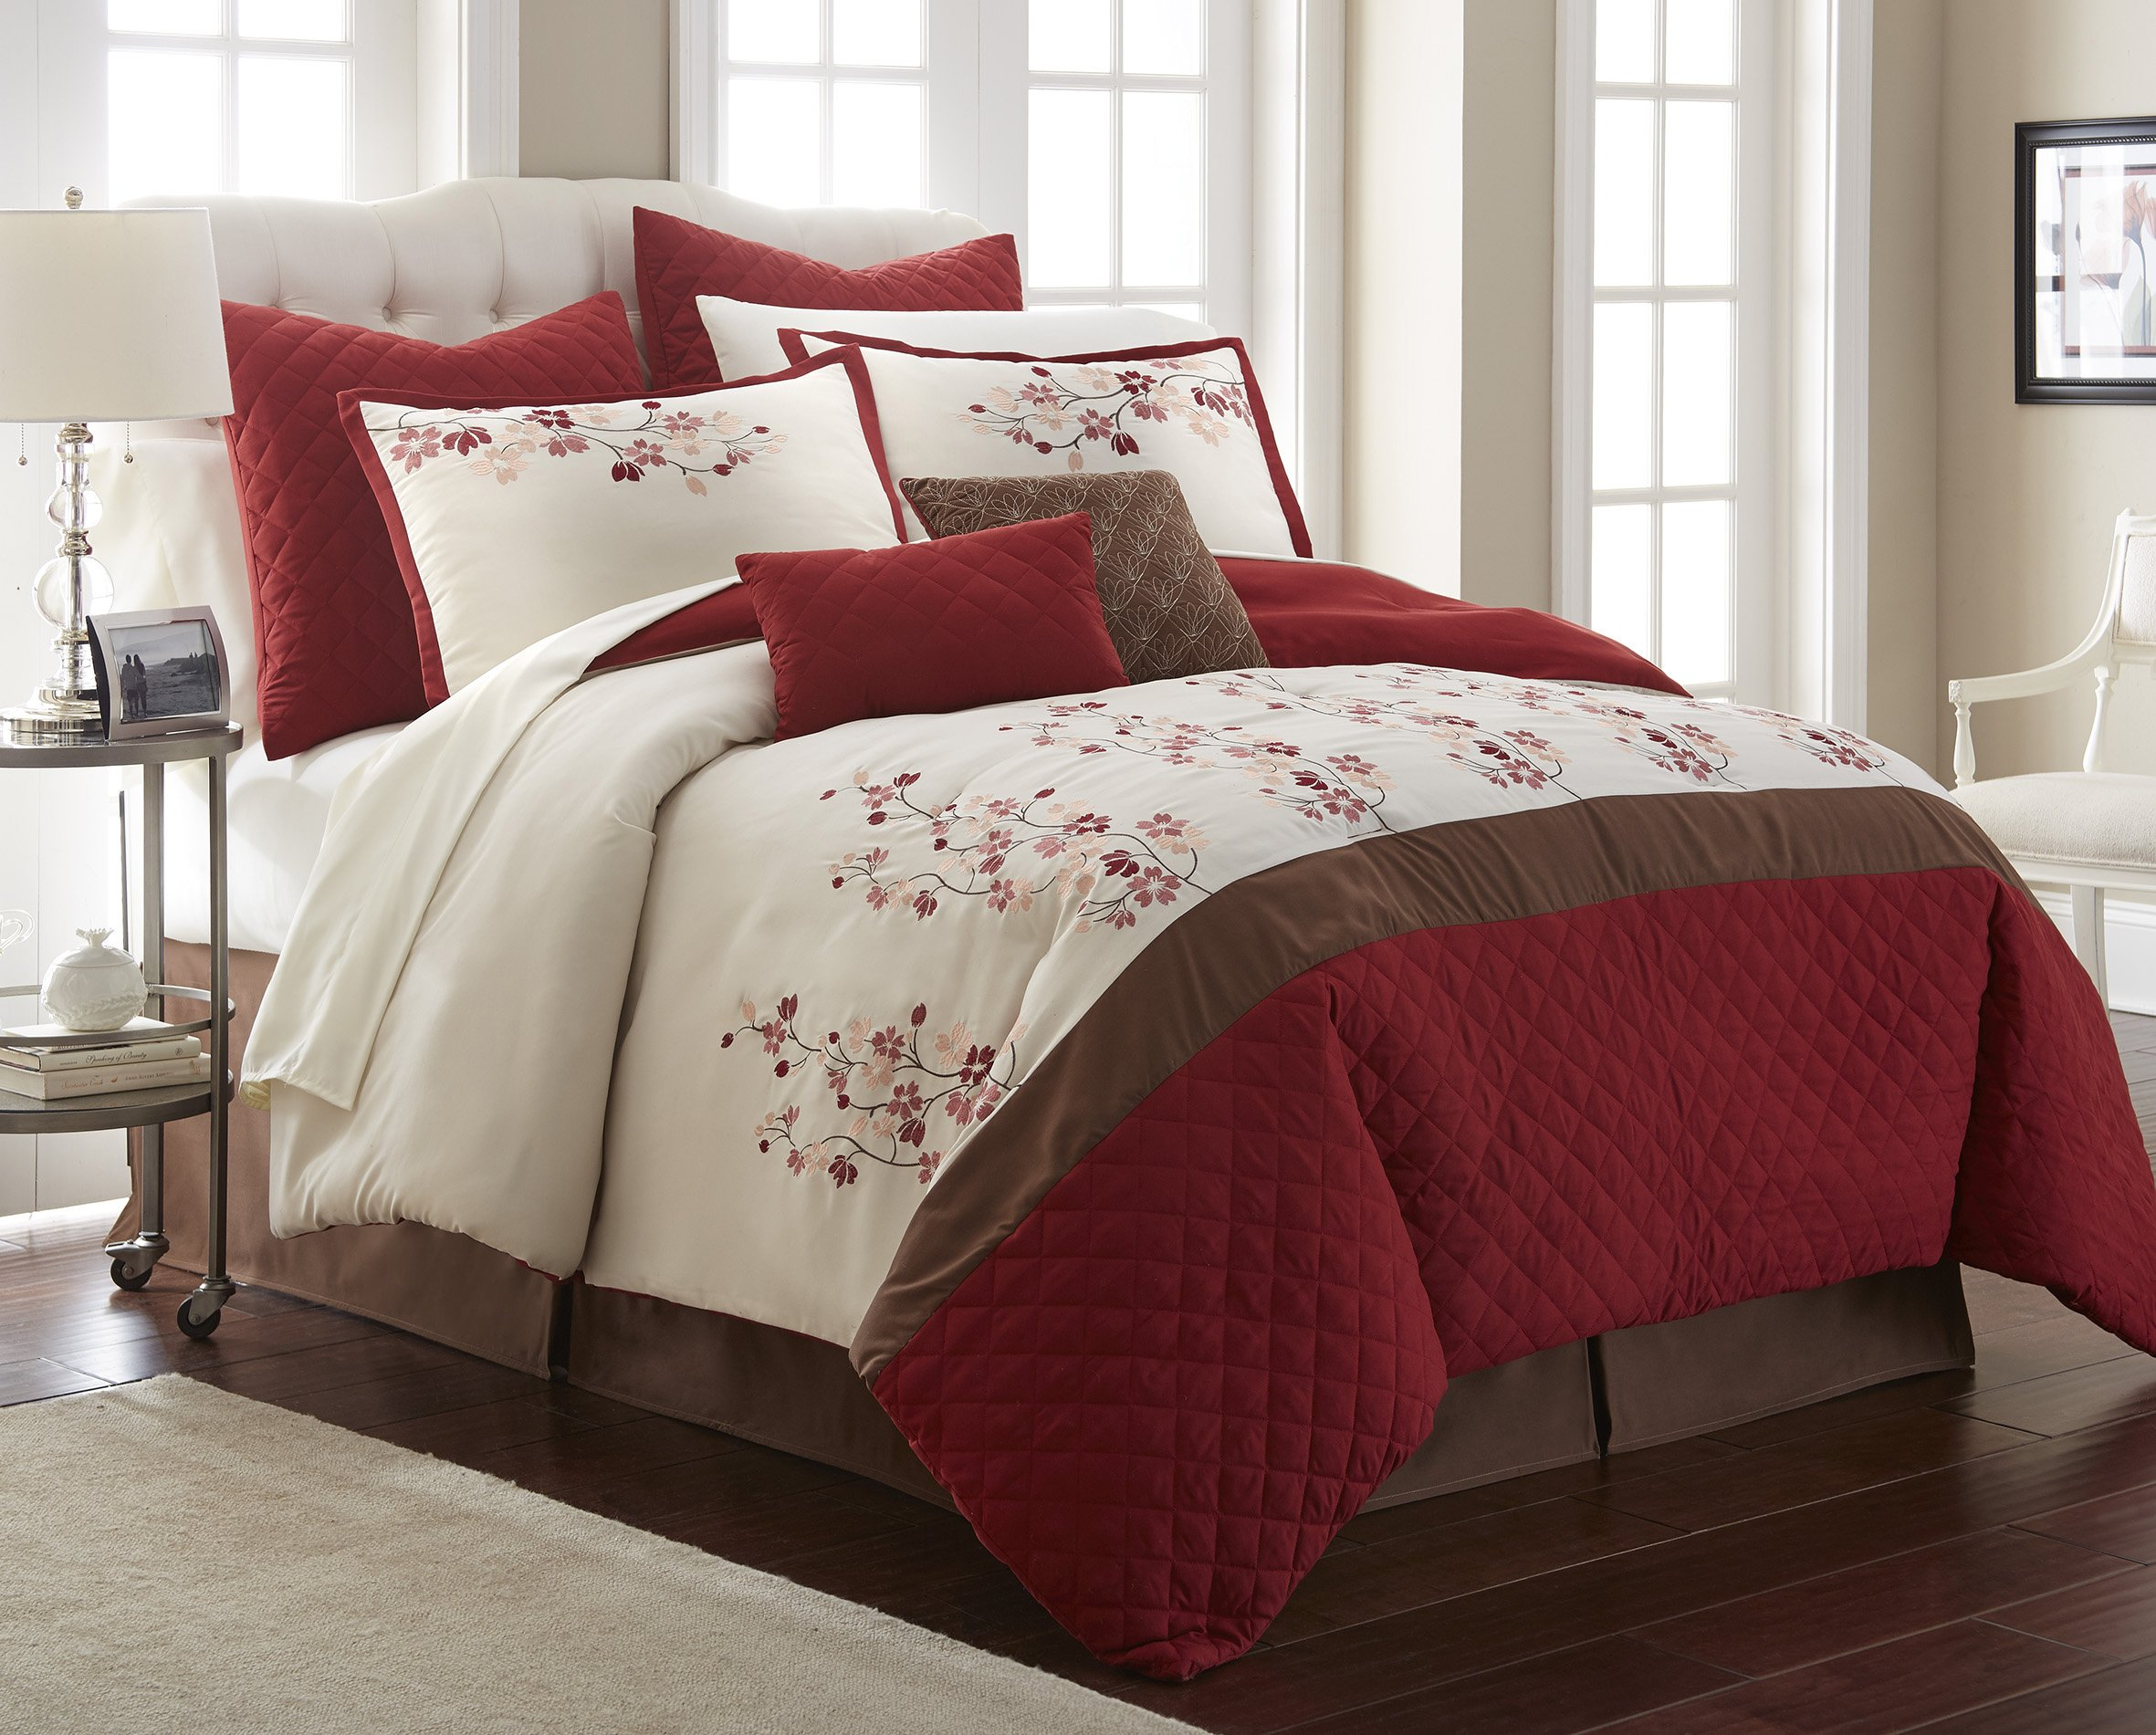 Nanshing America Blossoms Comforter Set, Queen, Red